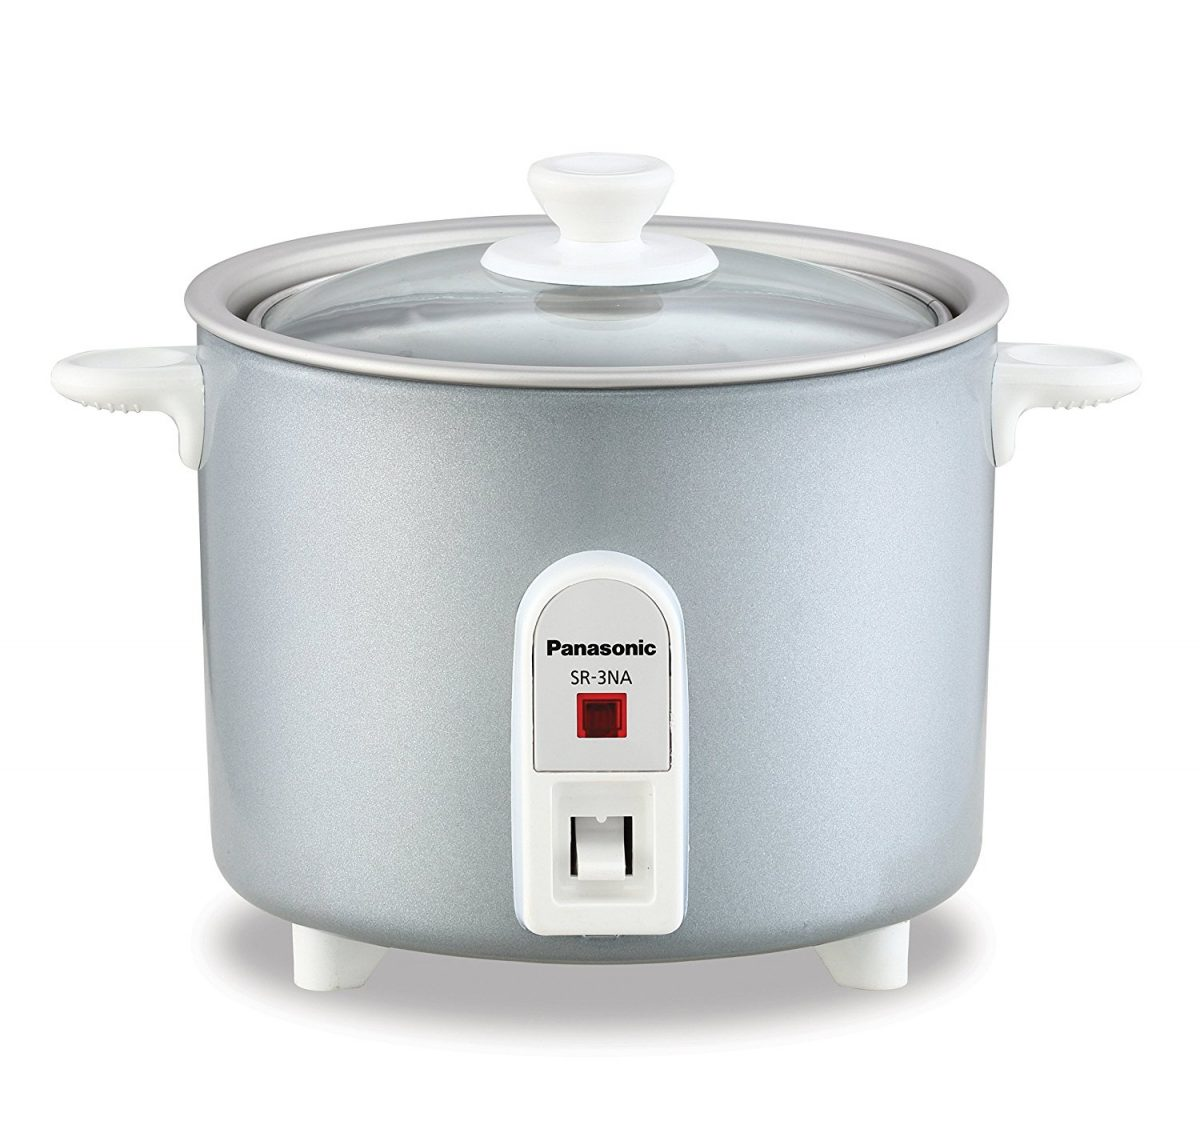 1.5 Cup Panasonic Automatic Rice Cooker Just $27.50